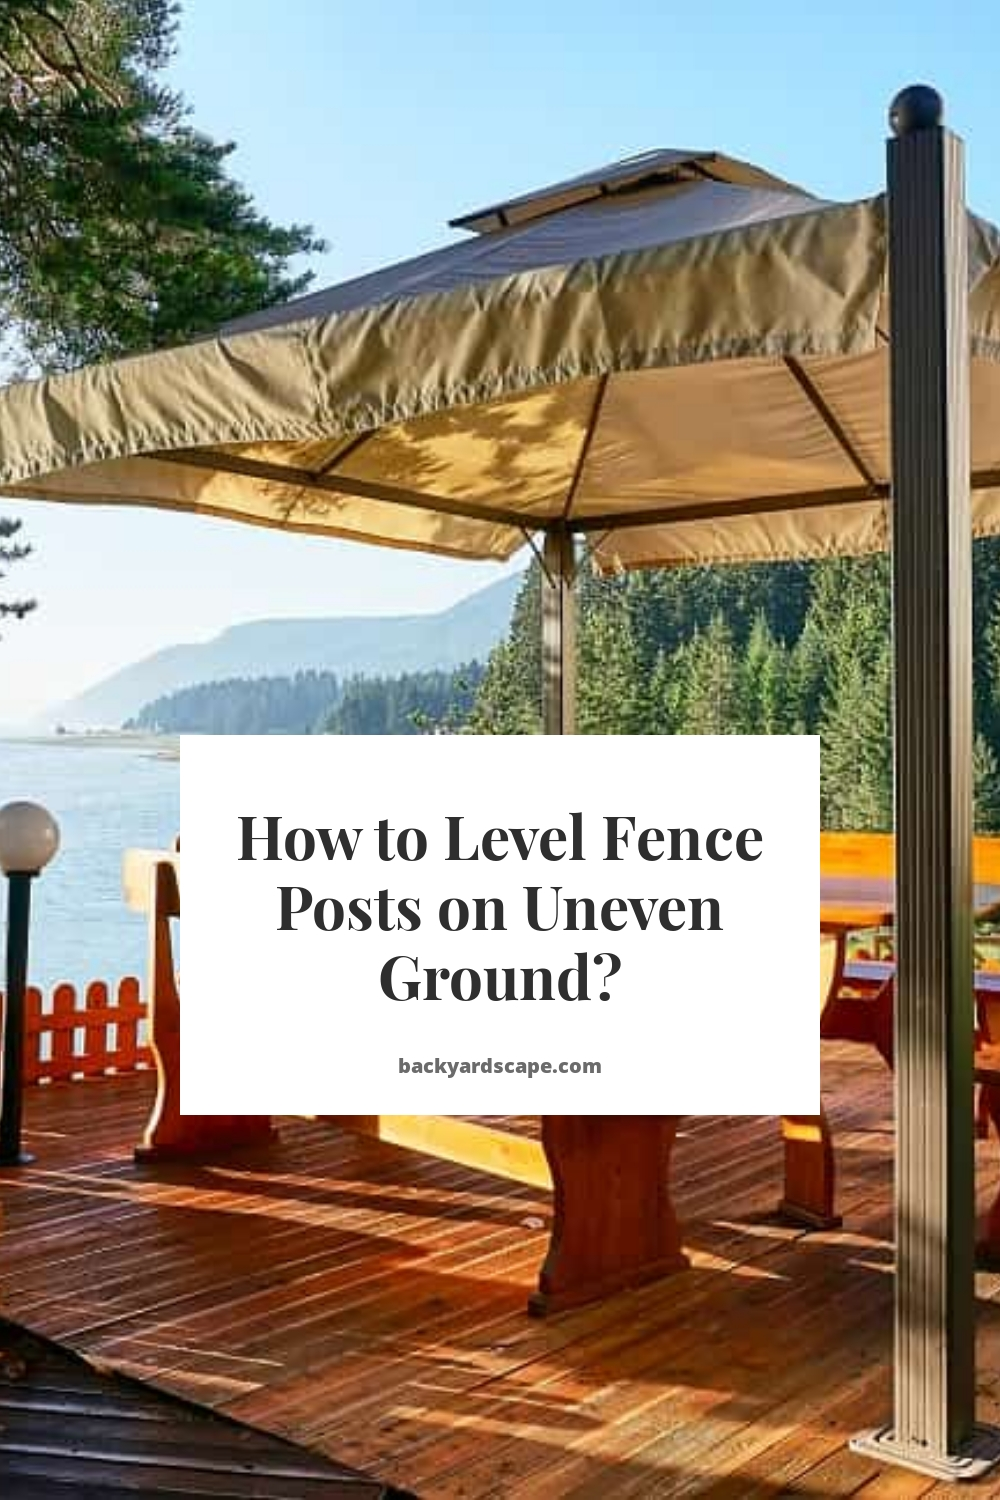 How to Level Fence Posts on Uneven Ground?